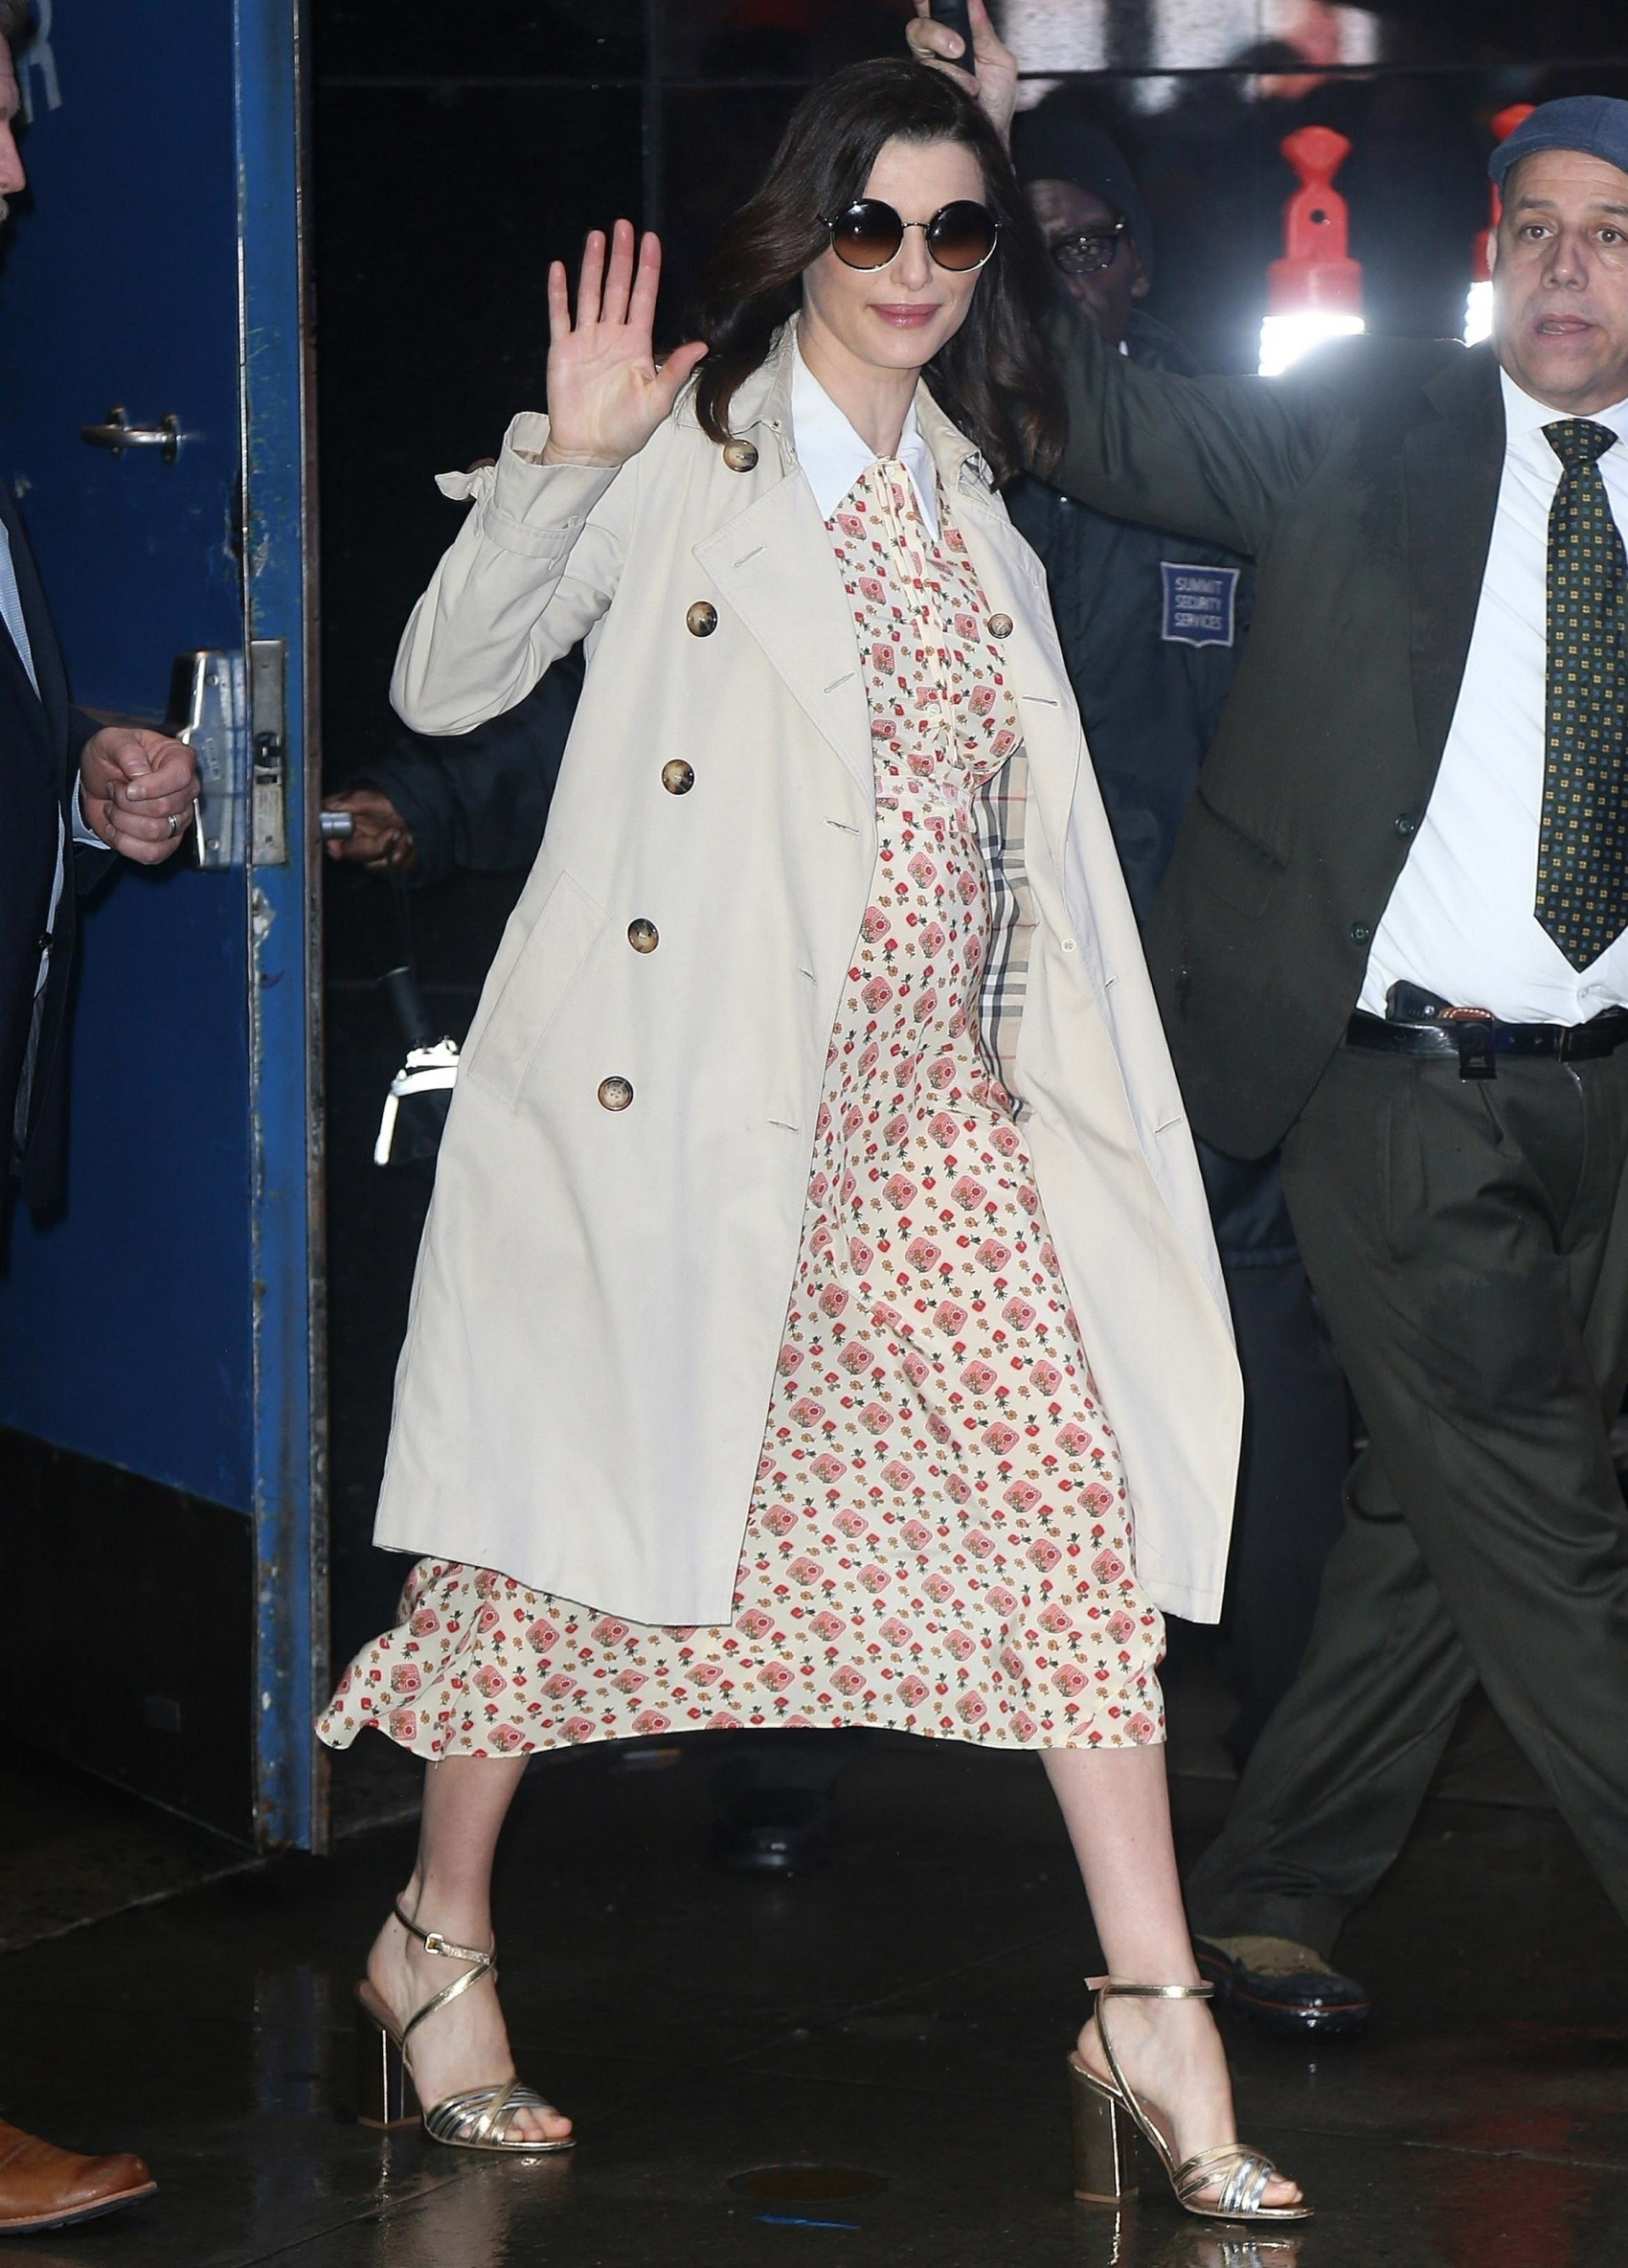 Pregnant Rachel Weisz waves to her fans at 'Good Morning America'